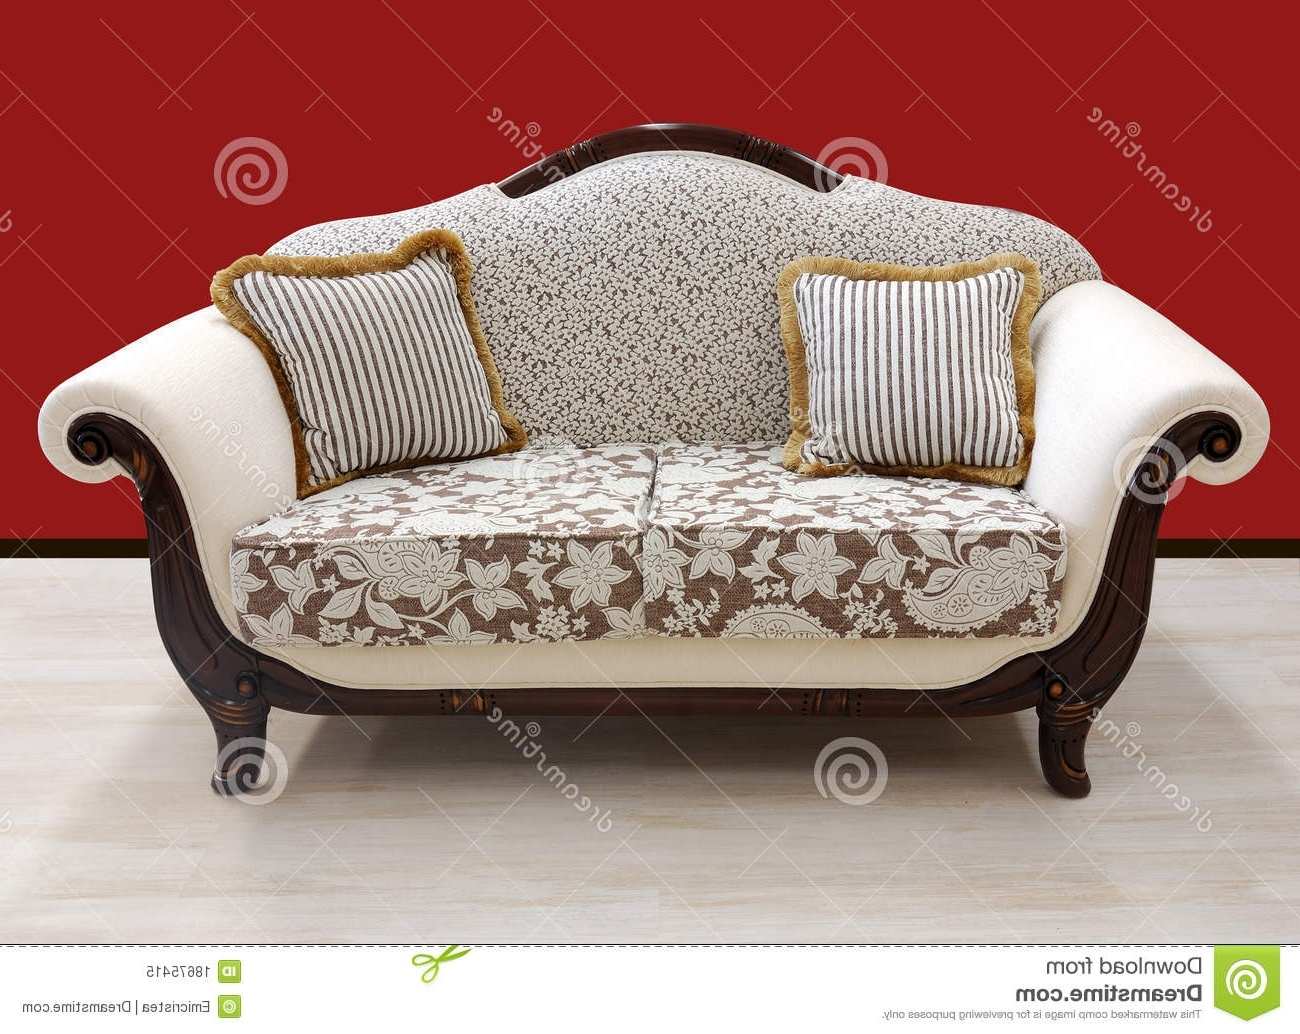 Old Fashioned Sofas Intended For Current Old Fashioned Sofa Styles – Fjellkjeden (View 10 of 15)